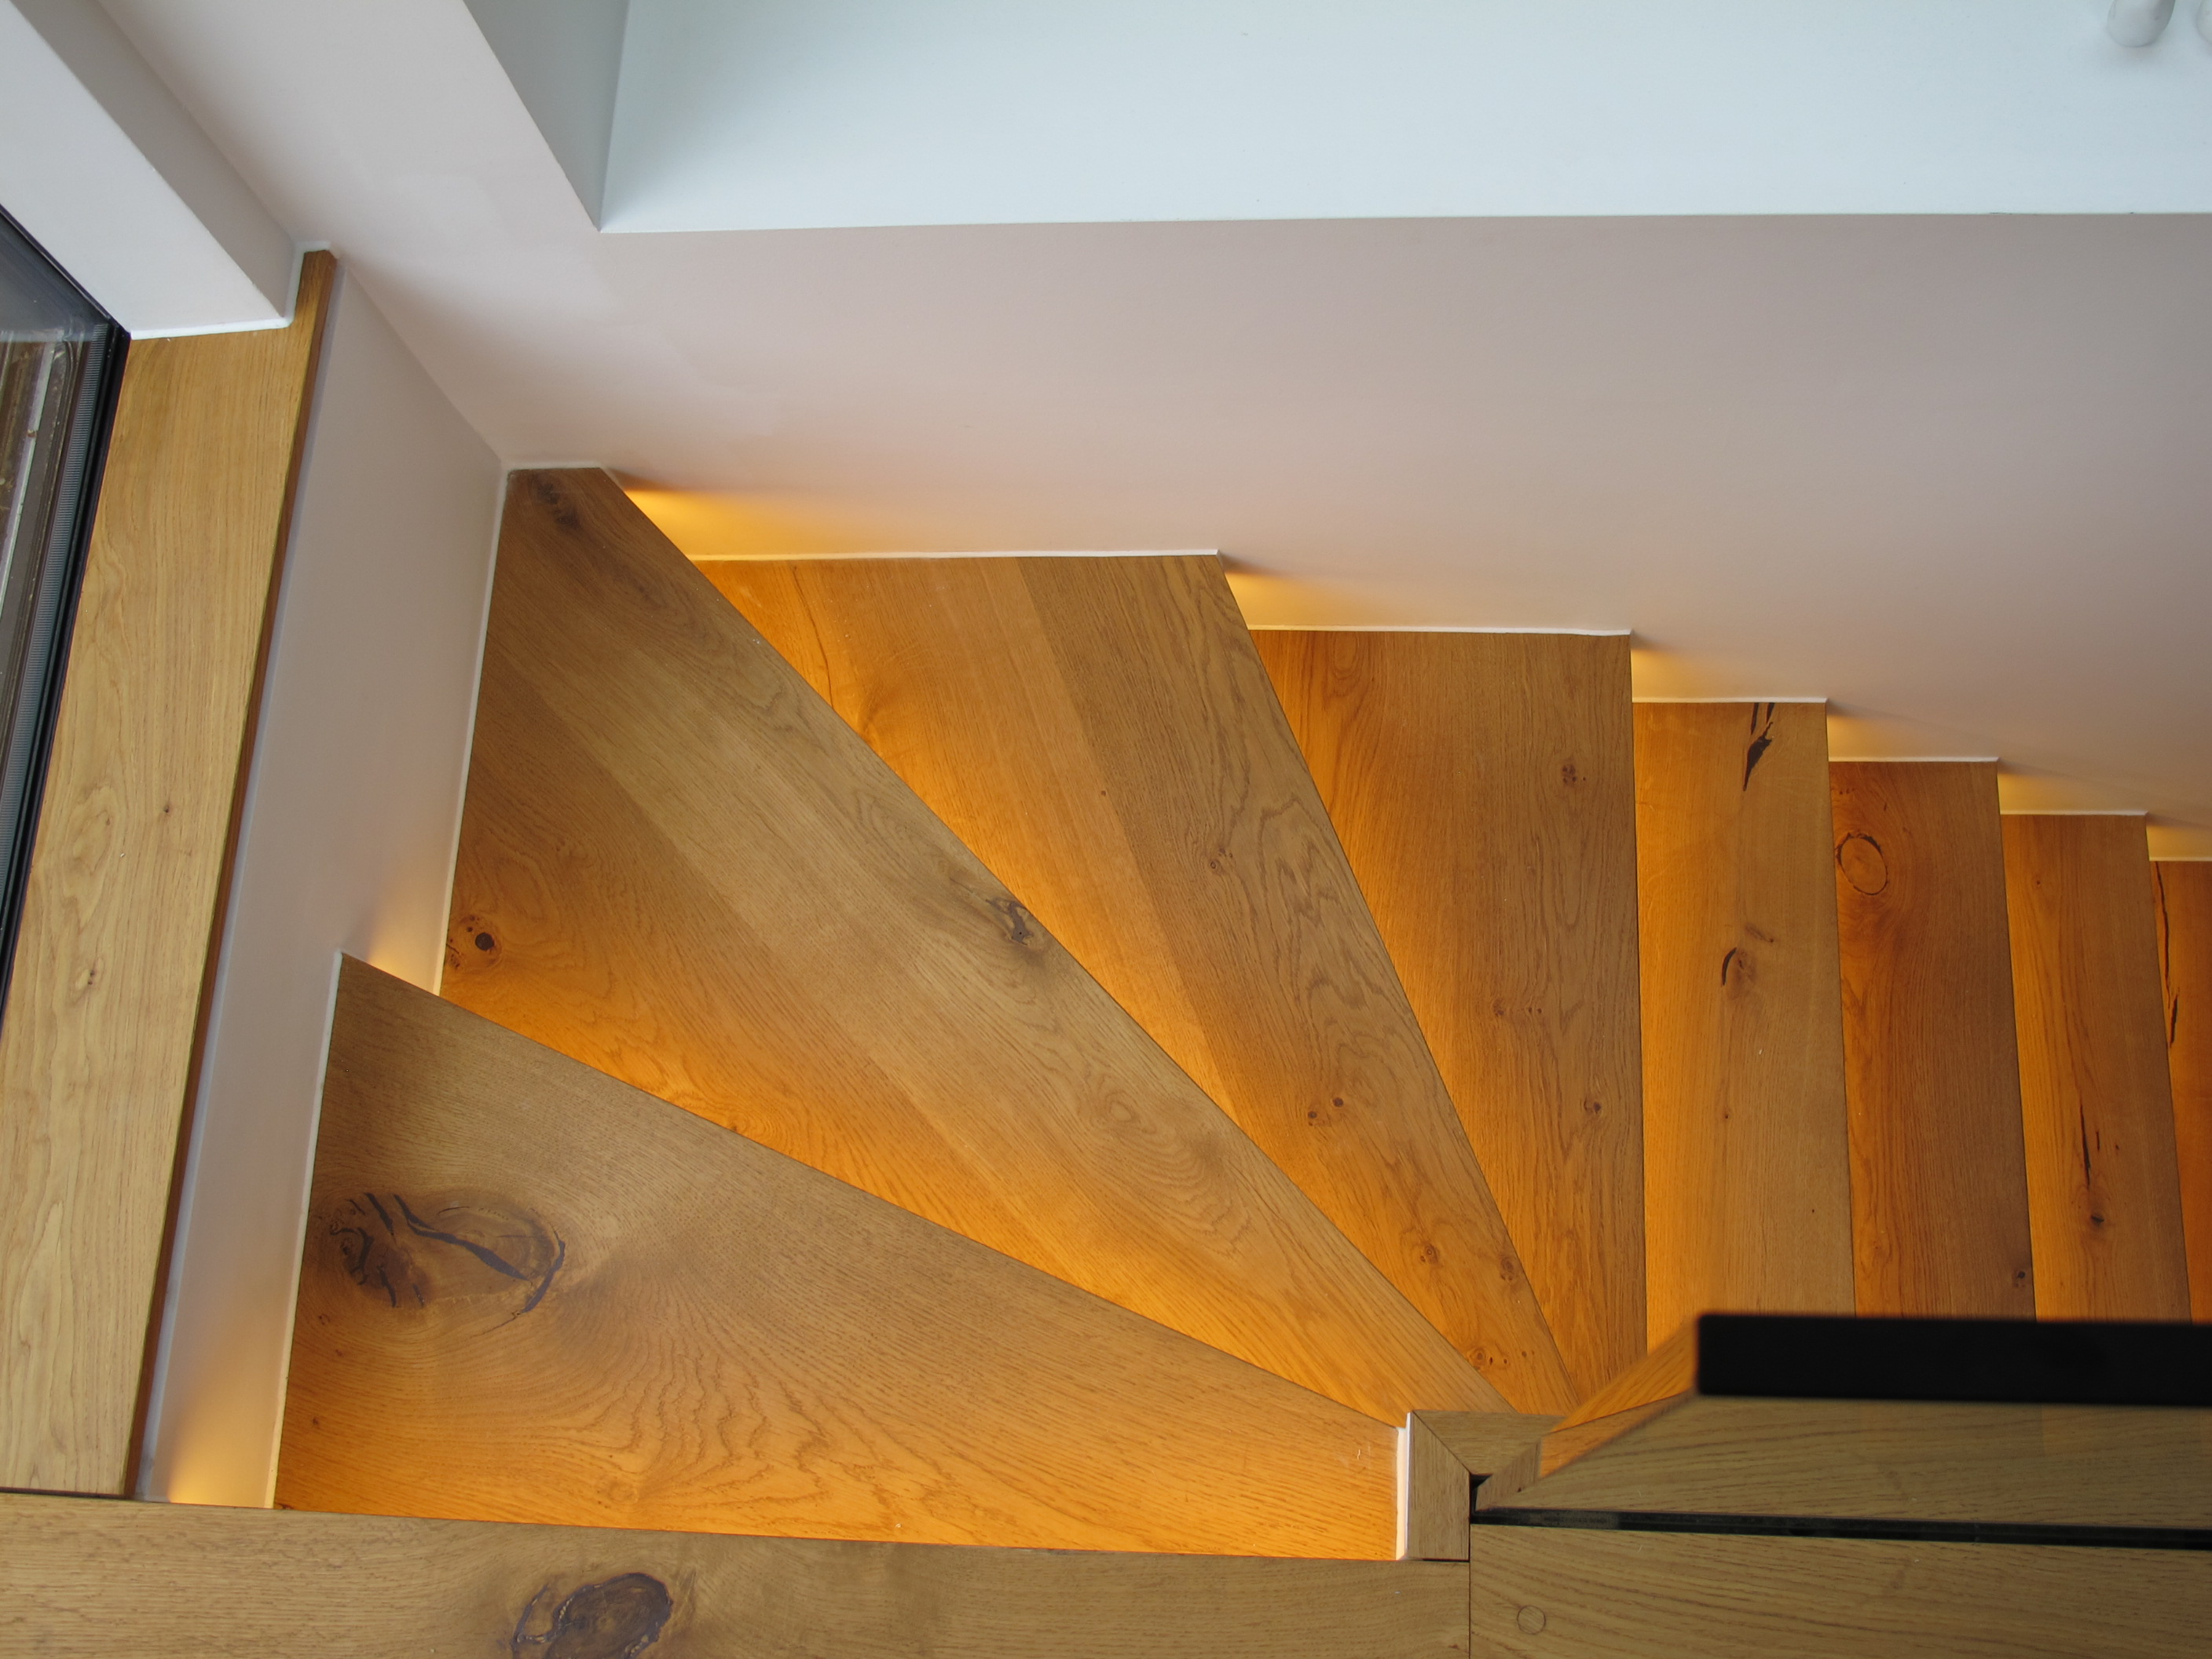 creativemass - bespoke staircase, lighting, materials, interior design